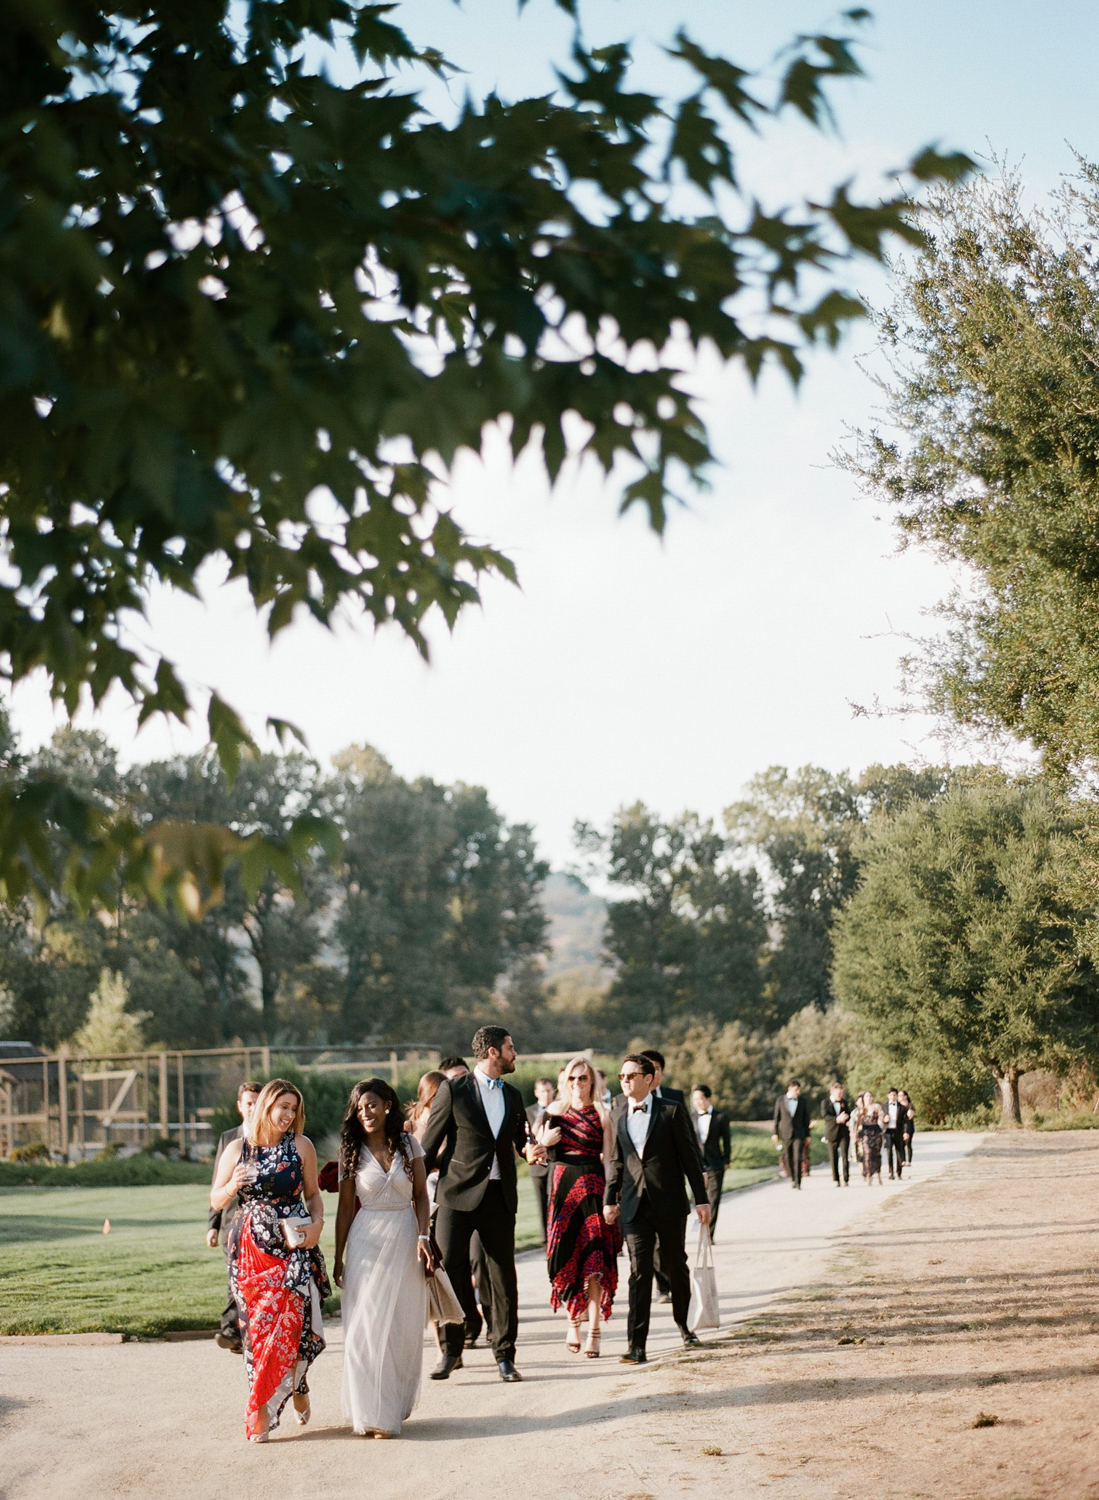 Guests arrive for a wedding reception in a barn at the Santa Lucia Preserve, California; Sylvie Gil Photography